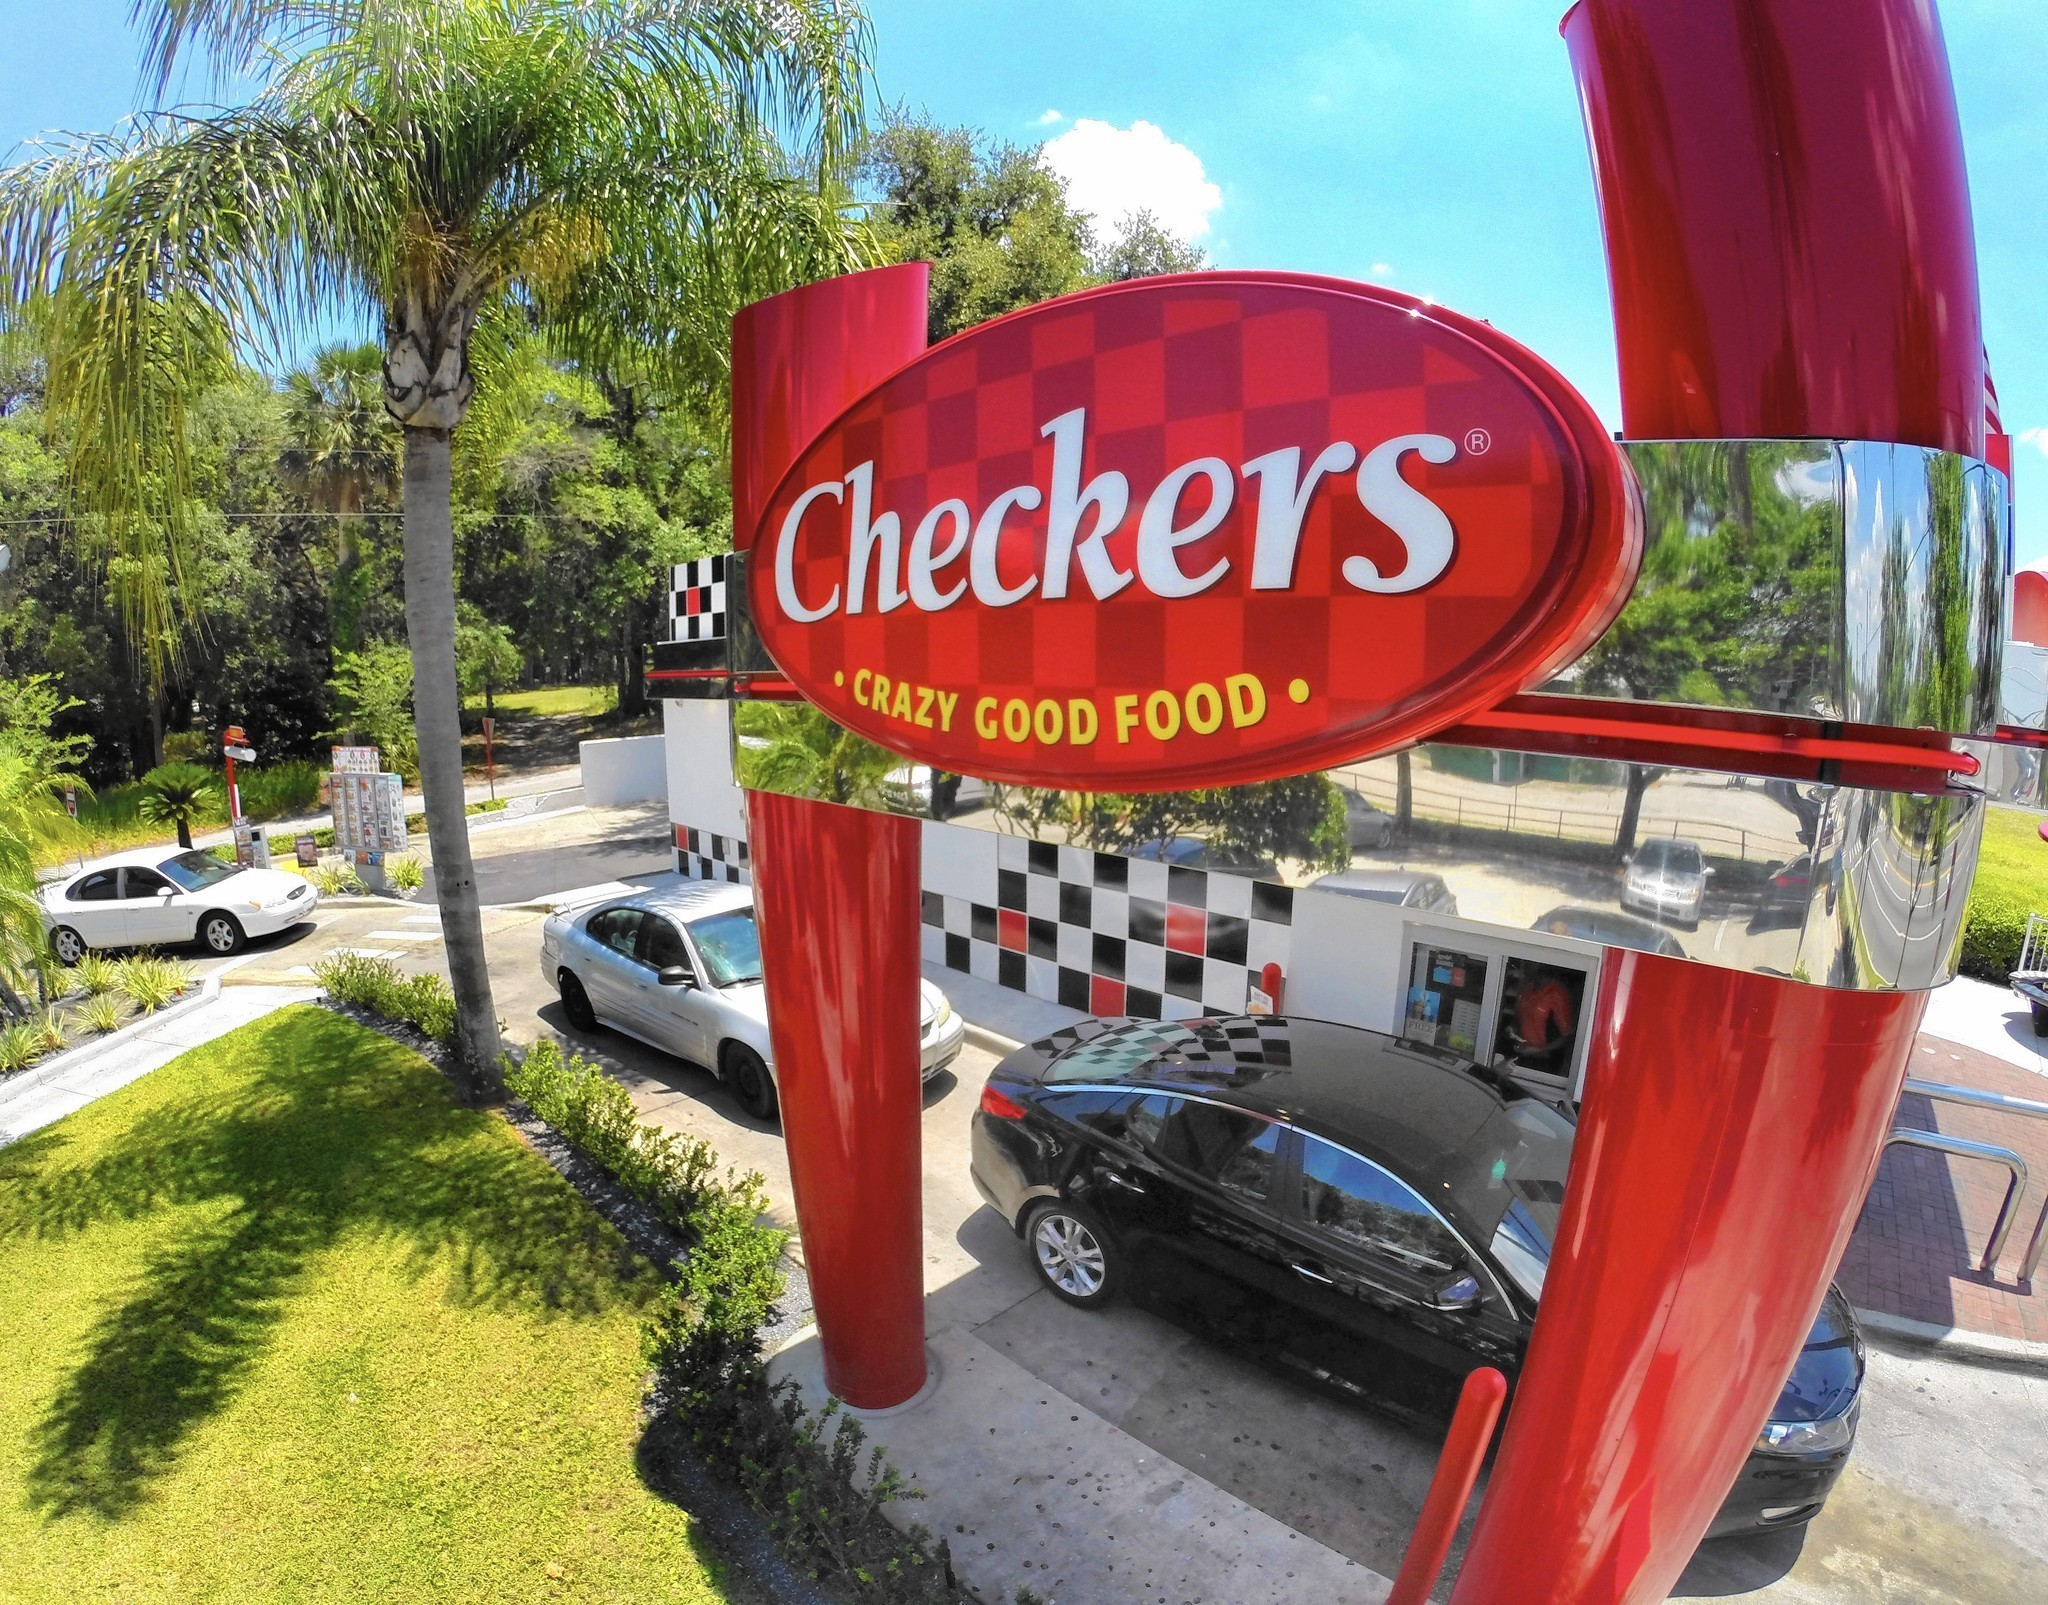 expanding chains show fast food is still king in central florida